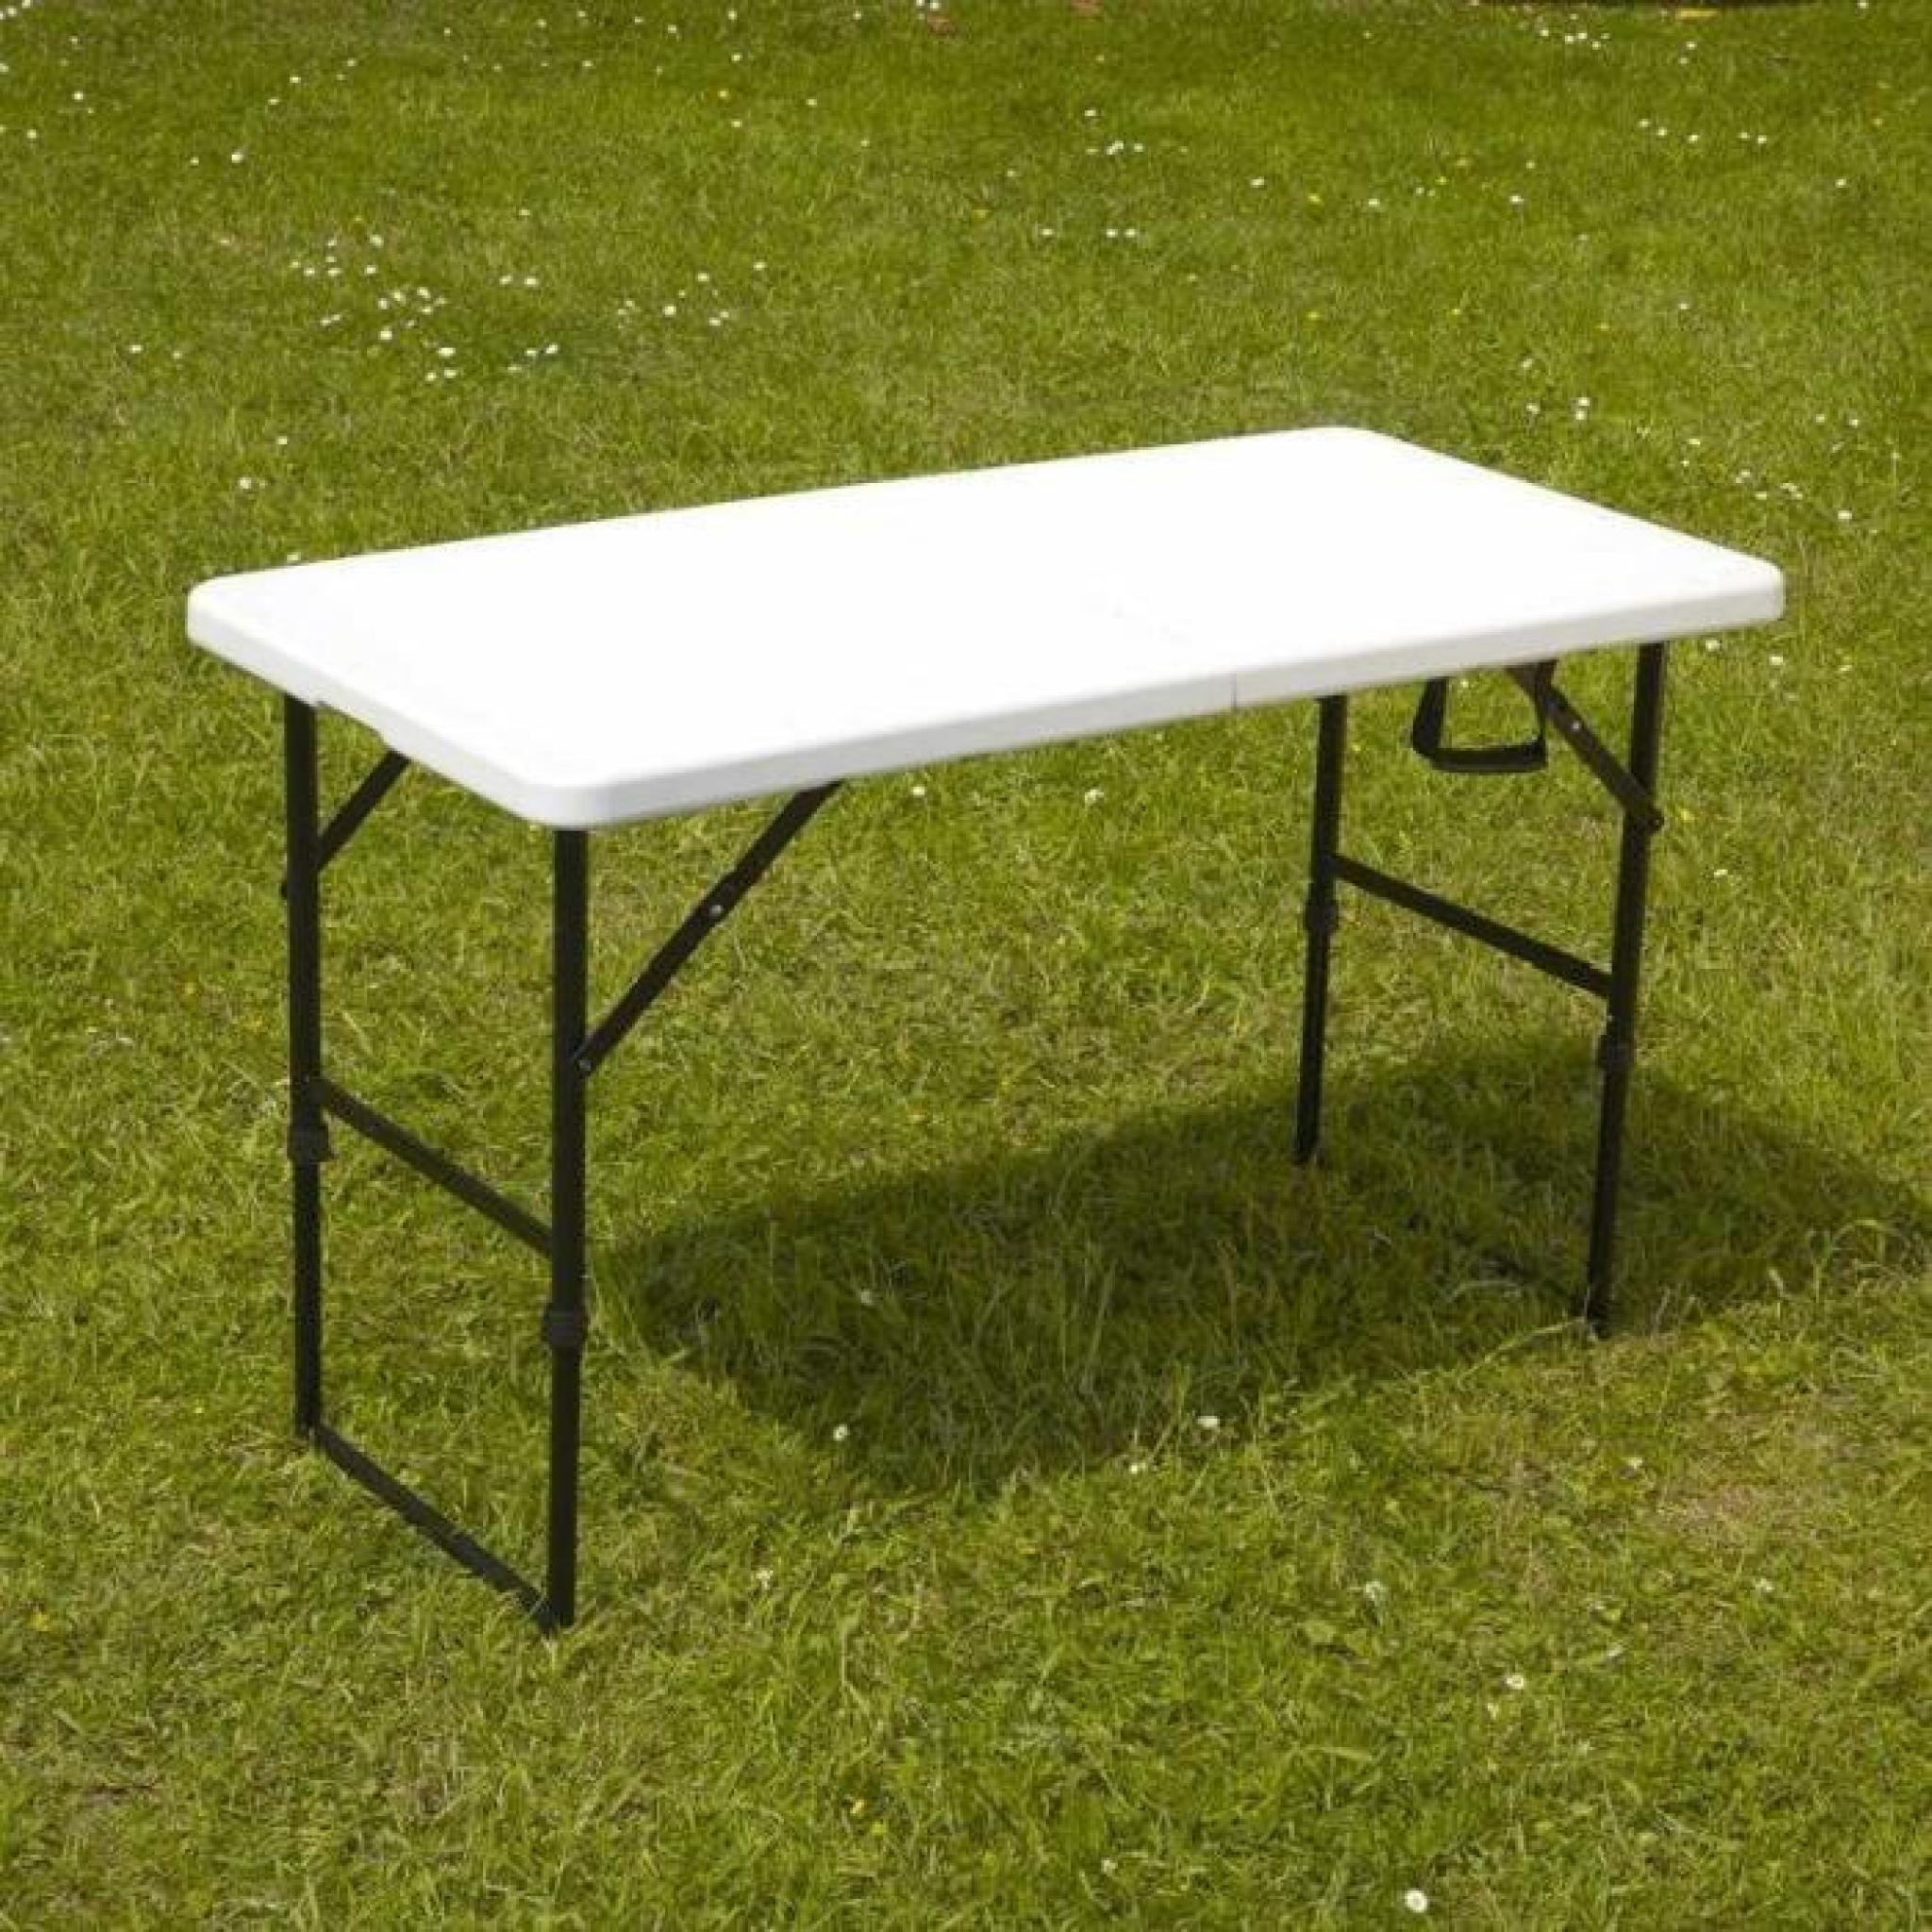 Table pliante portable camping 122 cm achat vente table for Table jardin pliante